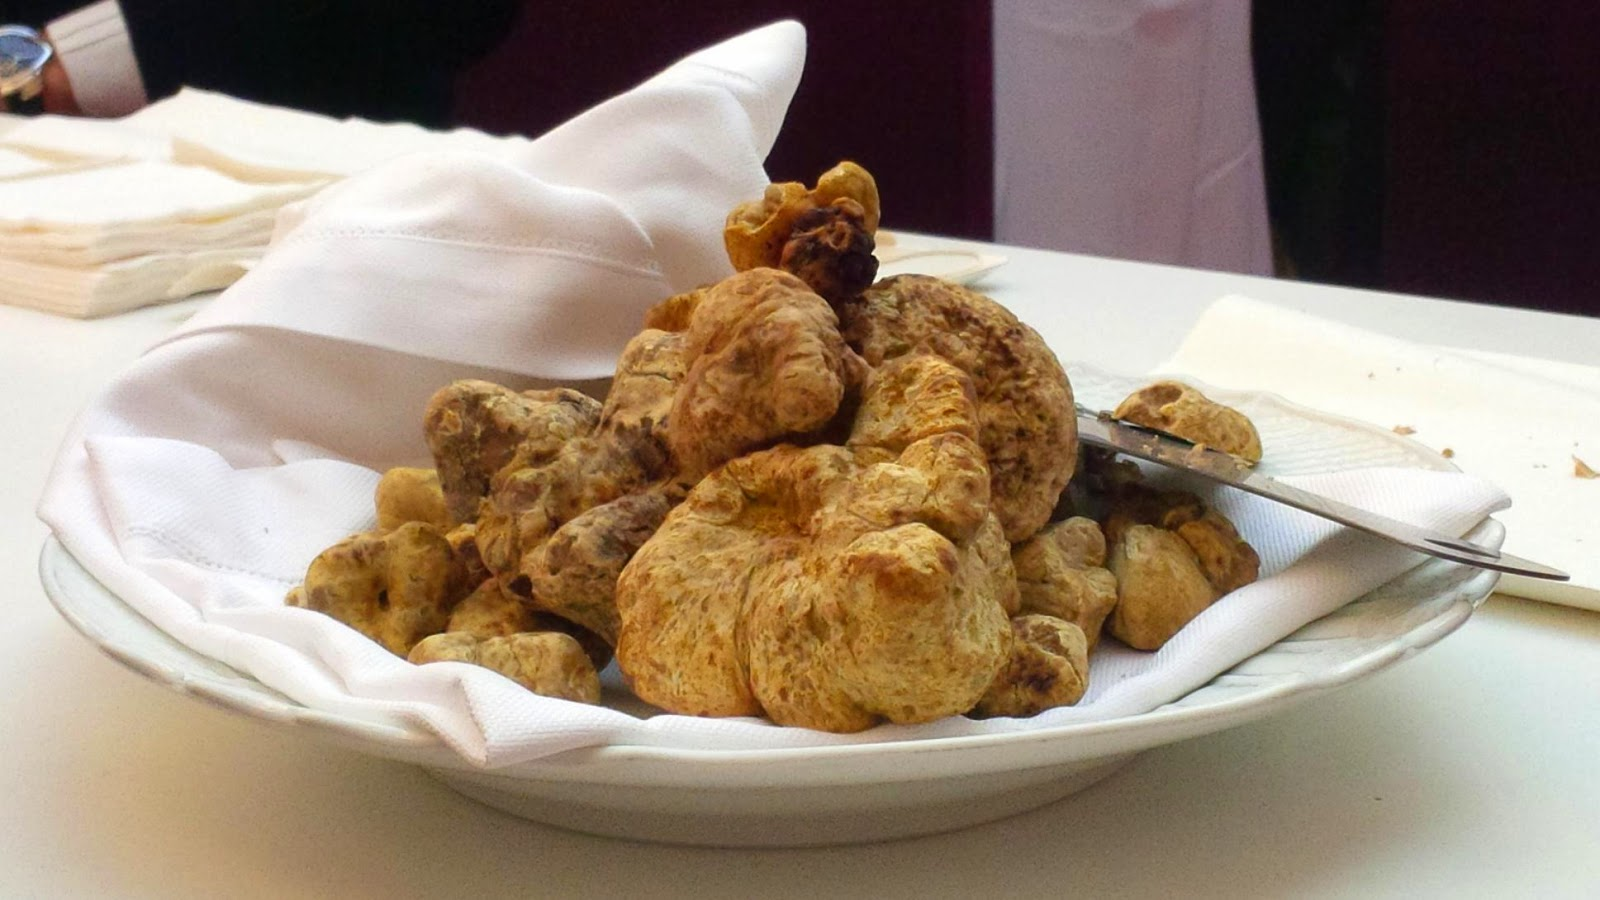 A plate of truffles at Taste of Christmas event in Verona